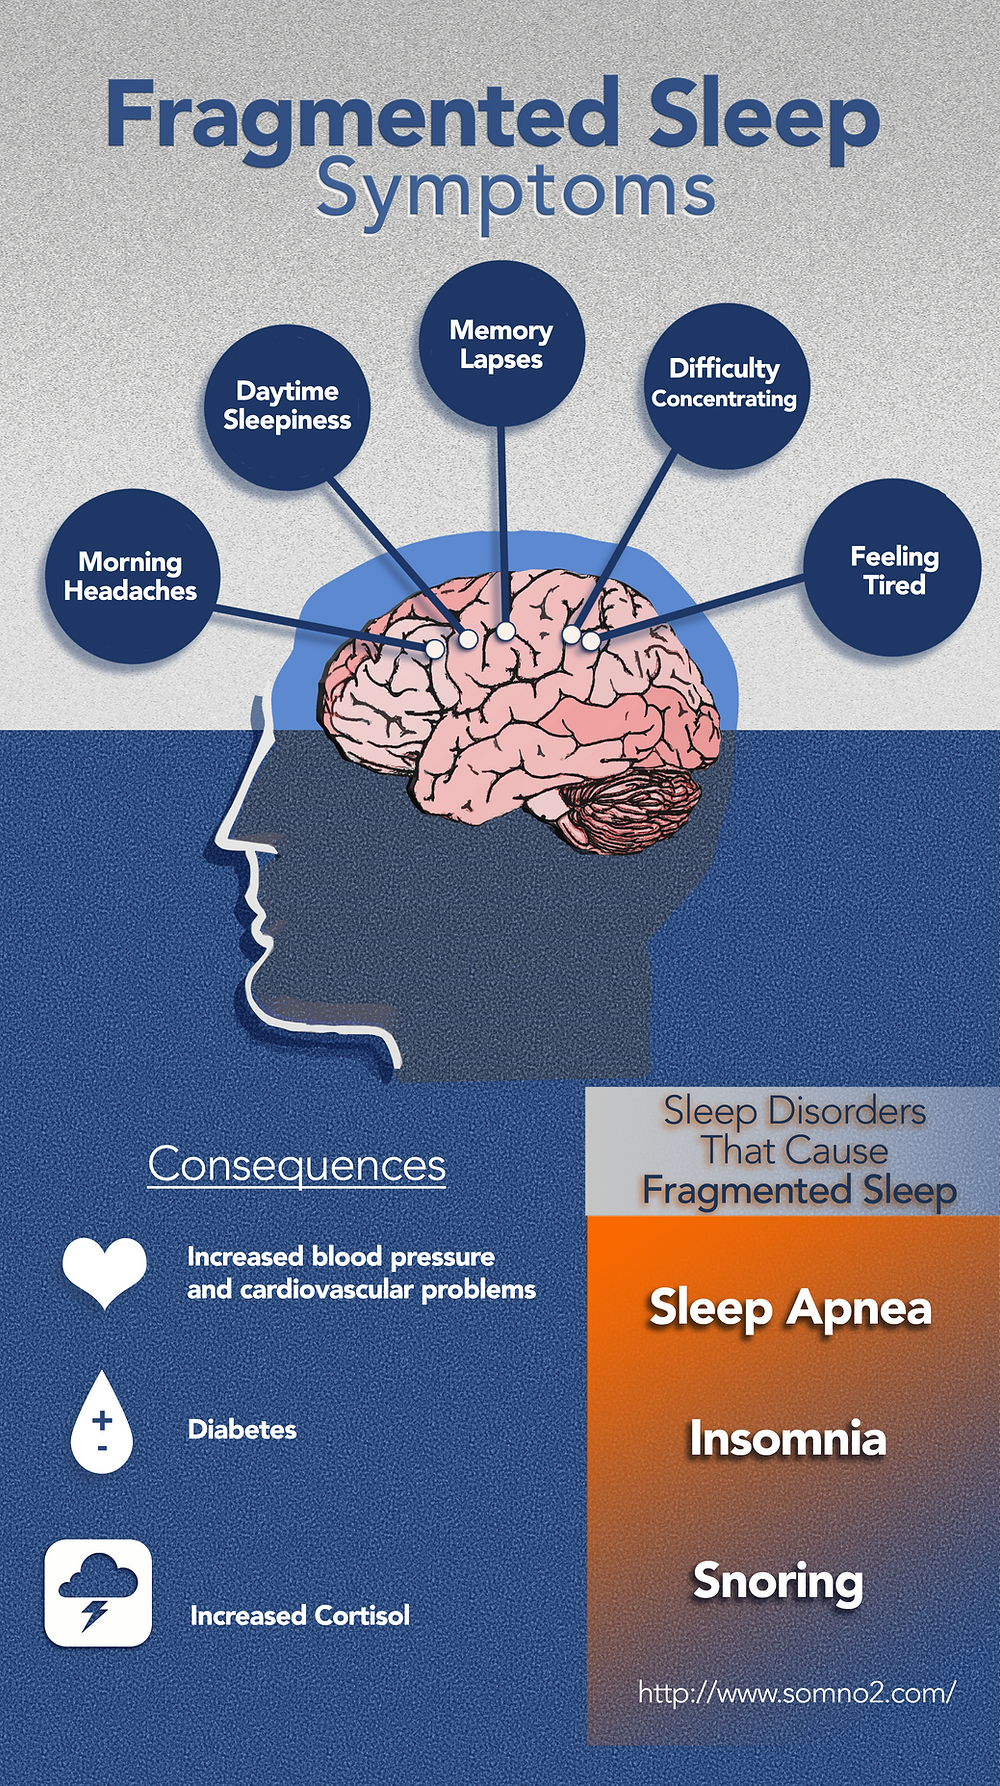 Fragmented Sleep Symptoms, morning headaches, daytime sleepiness, memory lapses, difficulty concentrating, feeling tired